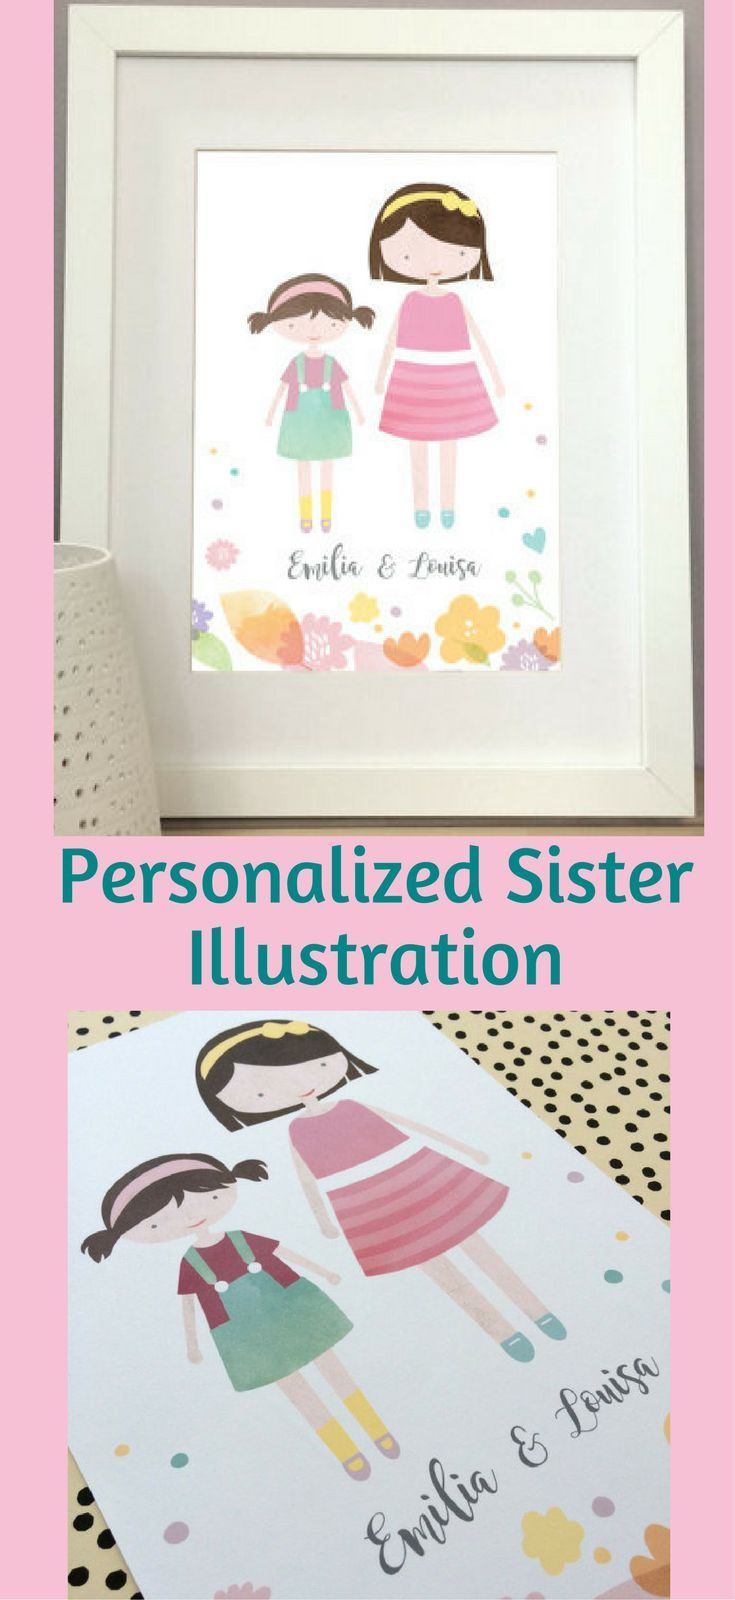 So Precious!! Me and my girls would love this in their shared bedroom! personalised illustration, sister print, custom kids wall art, modern kids room, personalized kids print, unframed print, Personalized Customized Sisters Playroom Wall Art, Playroom Decor, Toy Room, Sisters Wedding Decoration Birthday Gift Ideas, Housewarming Gift Ideas, Sisters Shared Bedroom Illustrated Print #affiliatelink